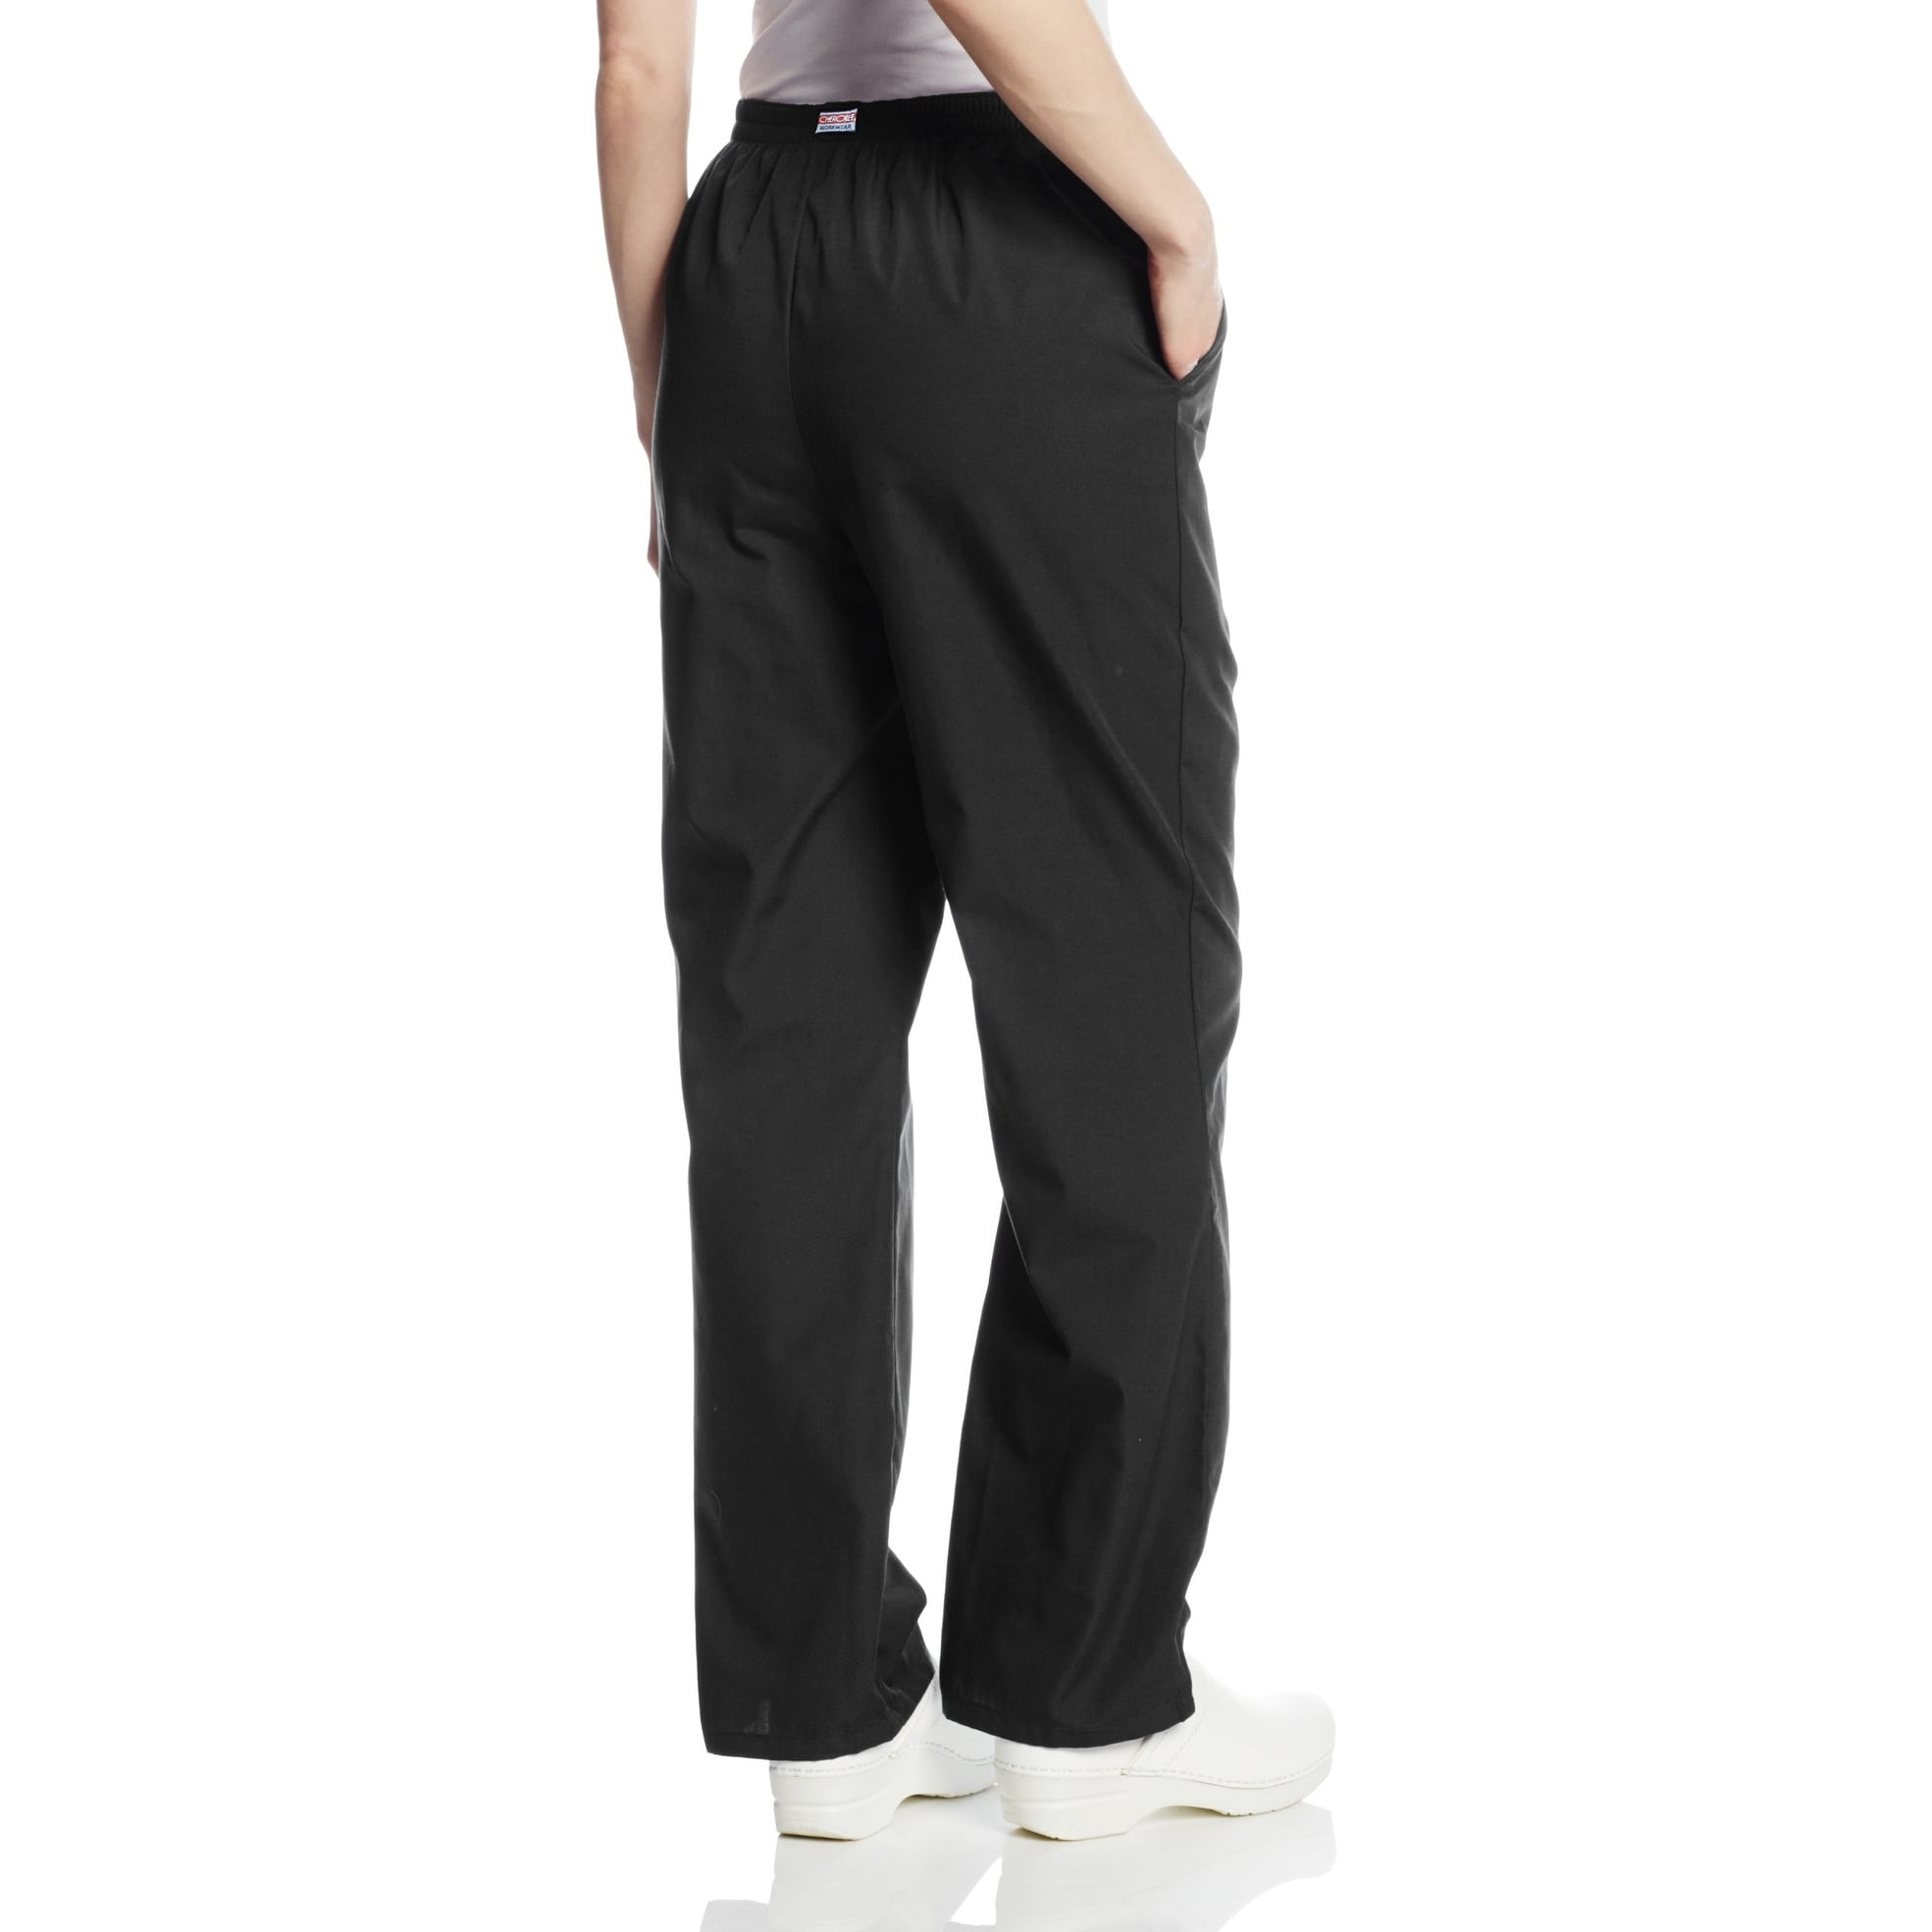 4469af90a2d Shop Cherokee Deep Black Womens Size XL Workwear Scrubs Pull-On Pants -  Free Shipping On Orders Over $45 - Overstock.com - 27341948